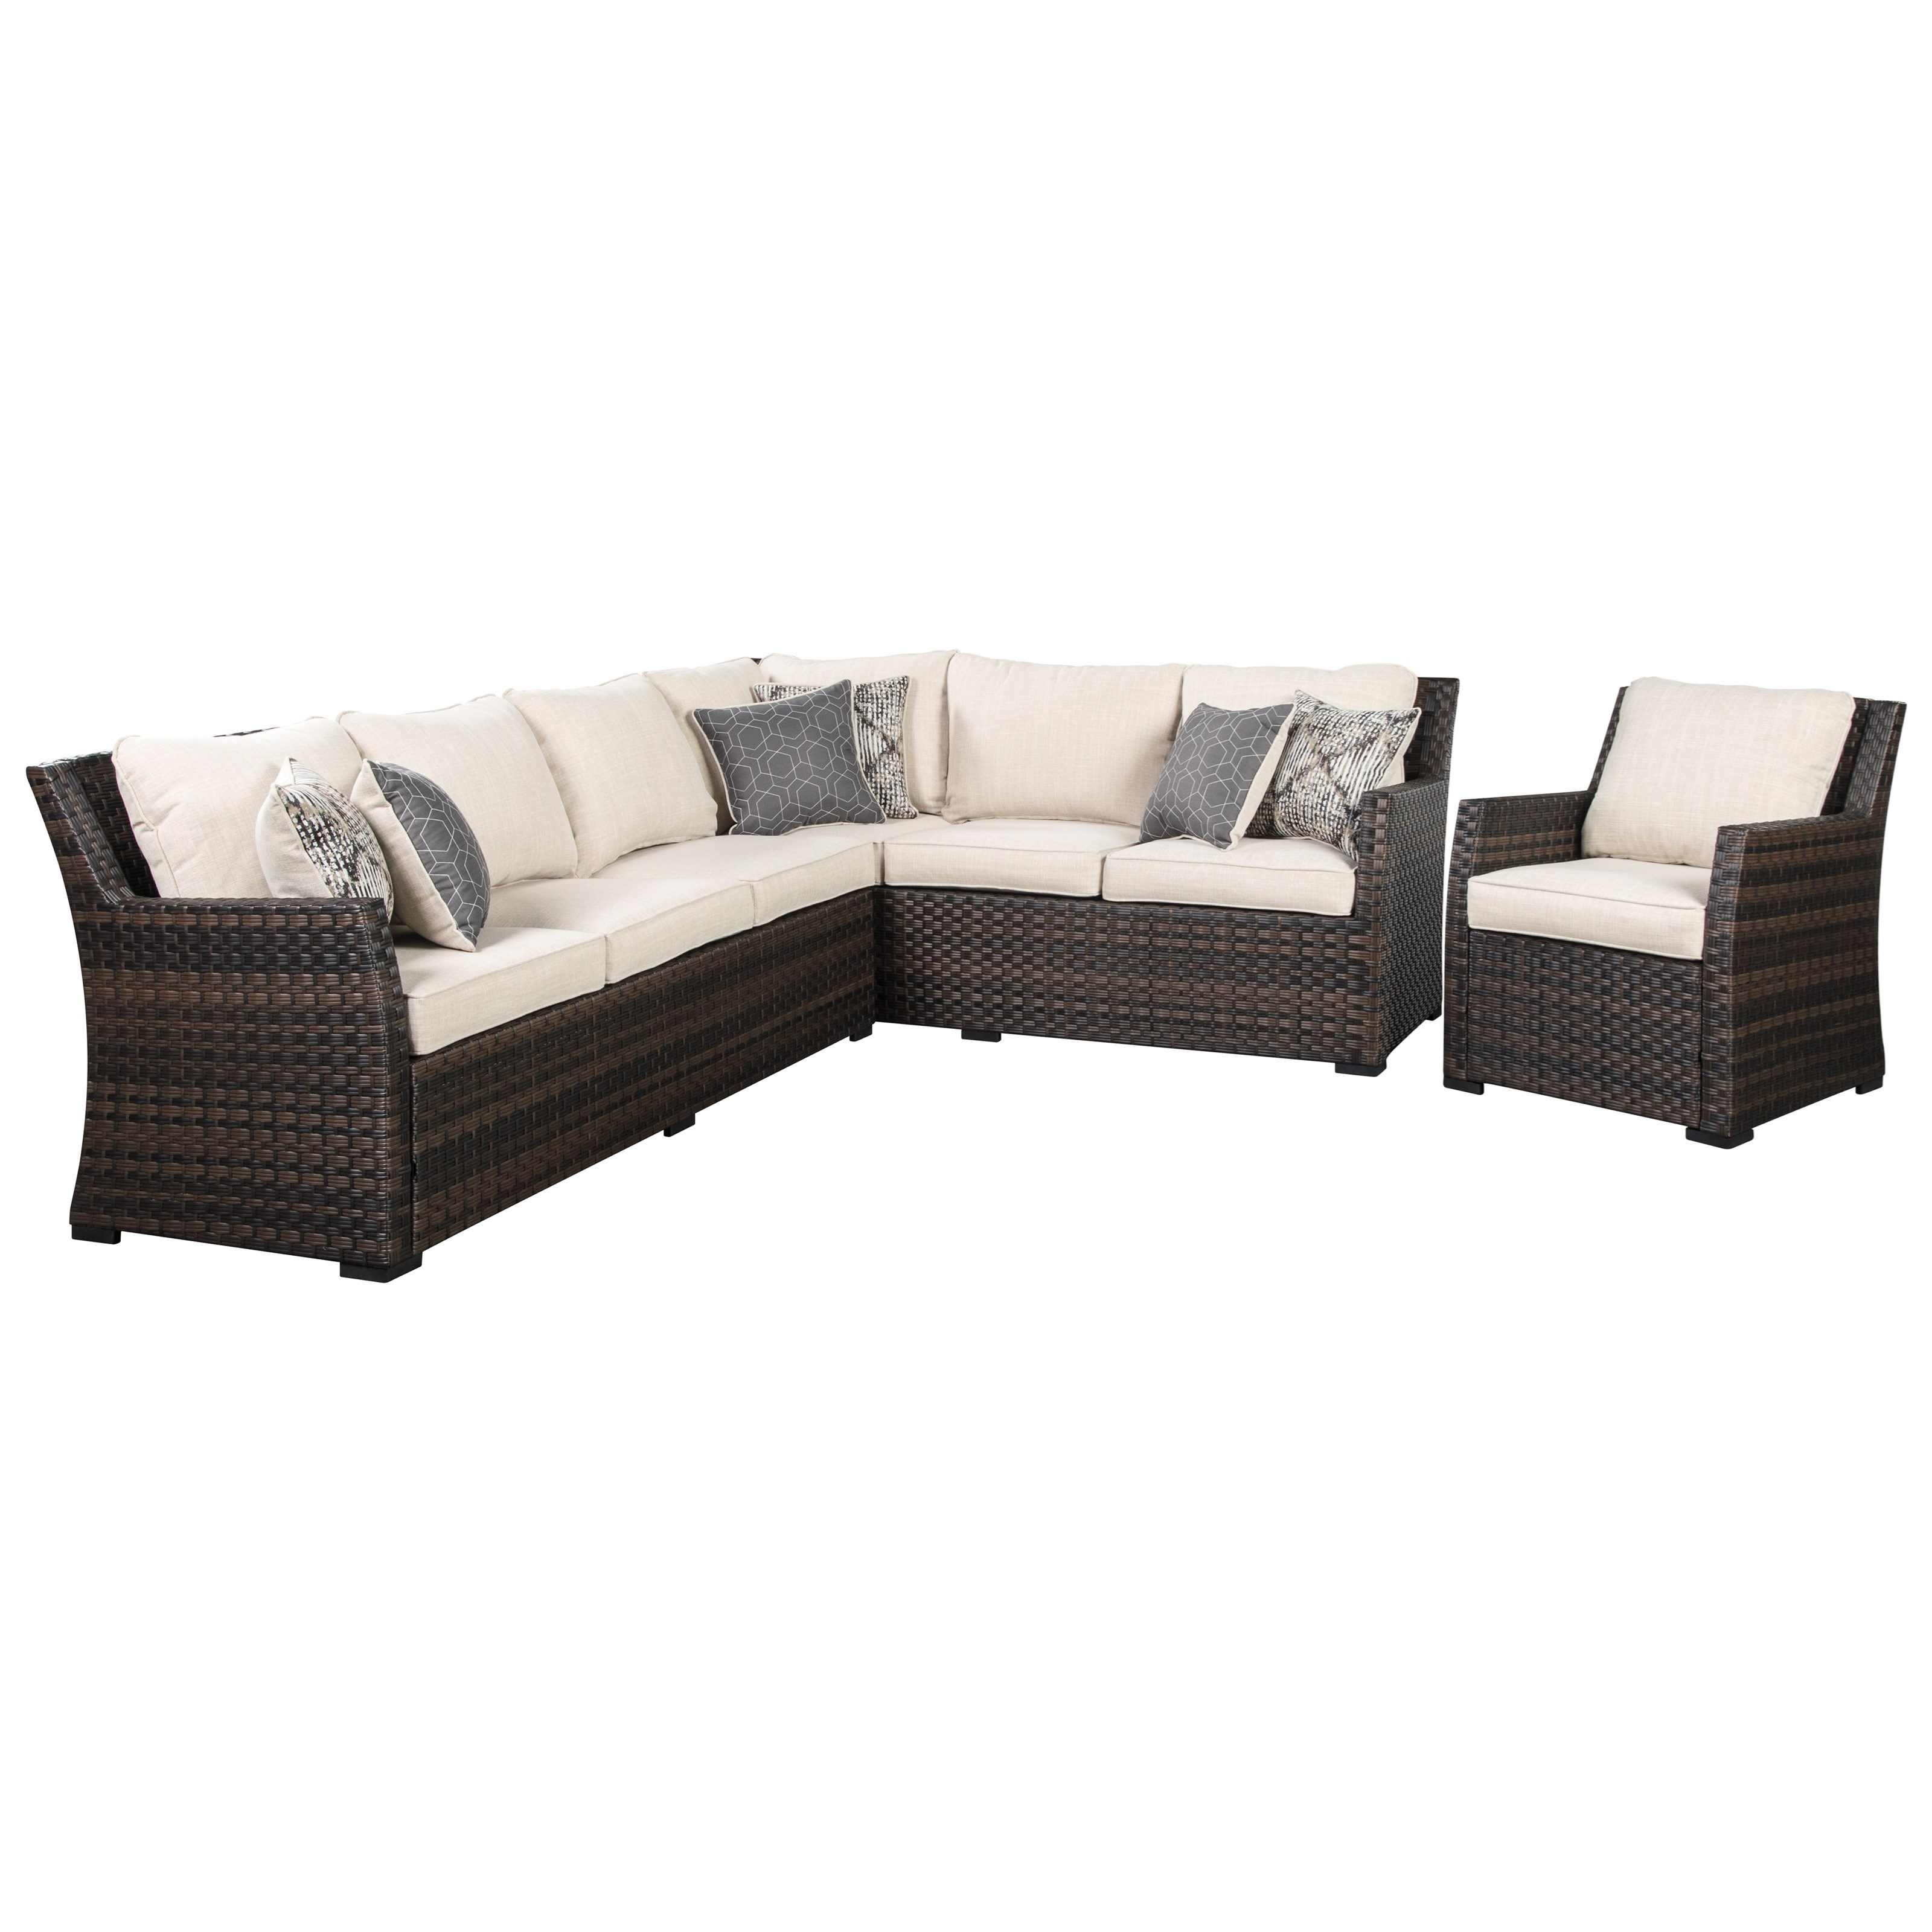 Easy Isle Outdoor 2-Piece Sectional & Lounge Chair Set by Signature Design by Ashley at Northeast Factory Direct